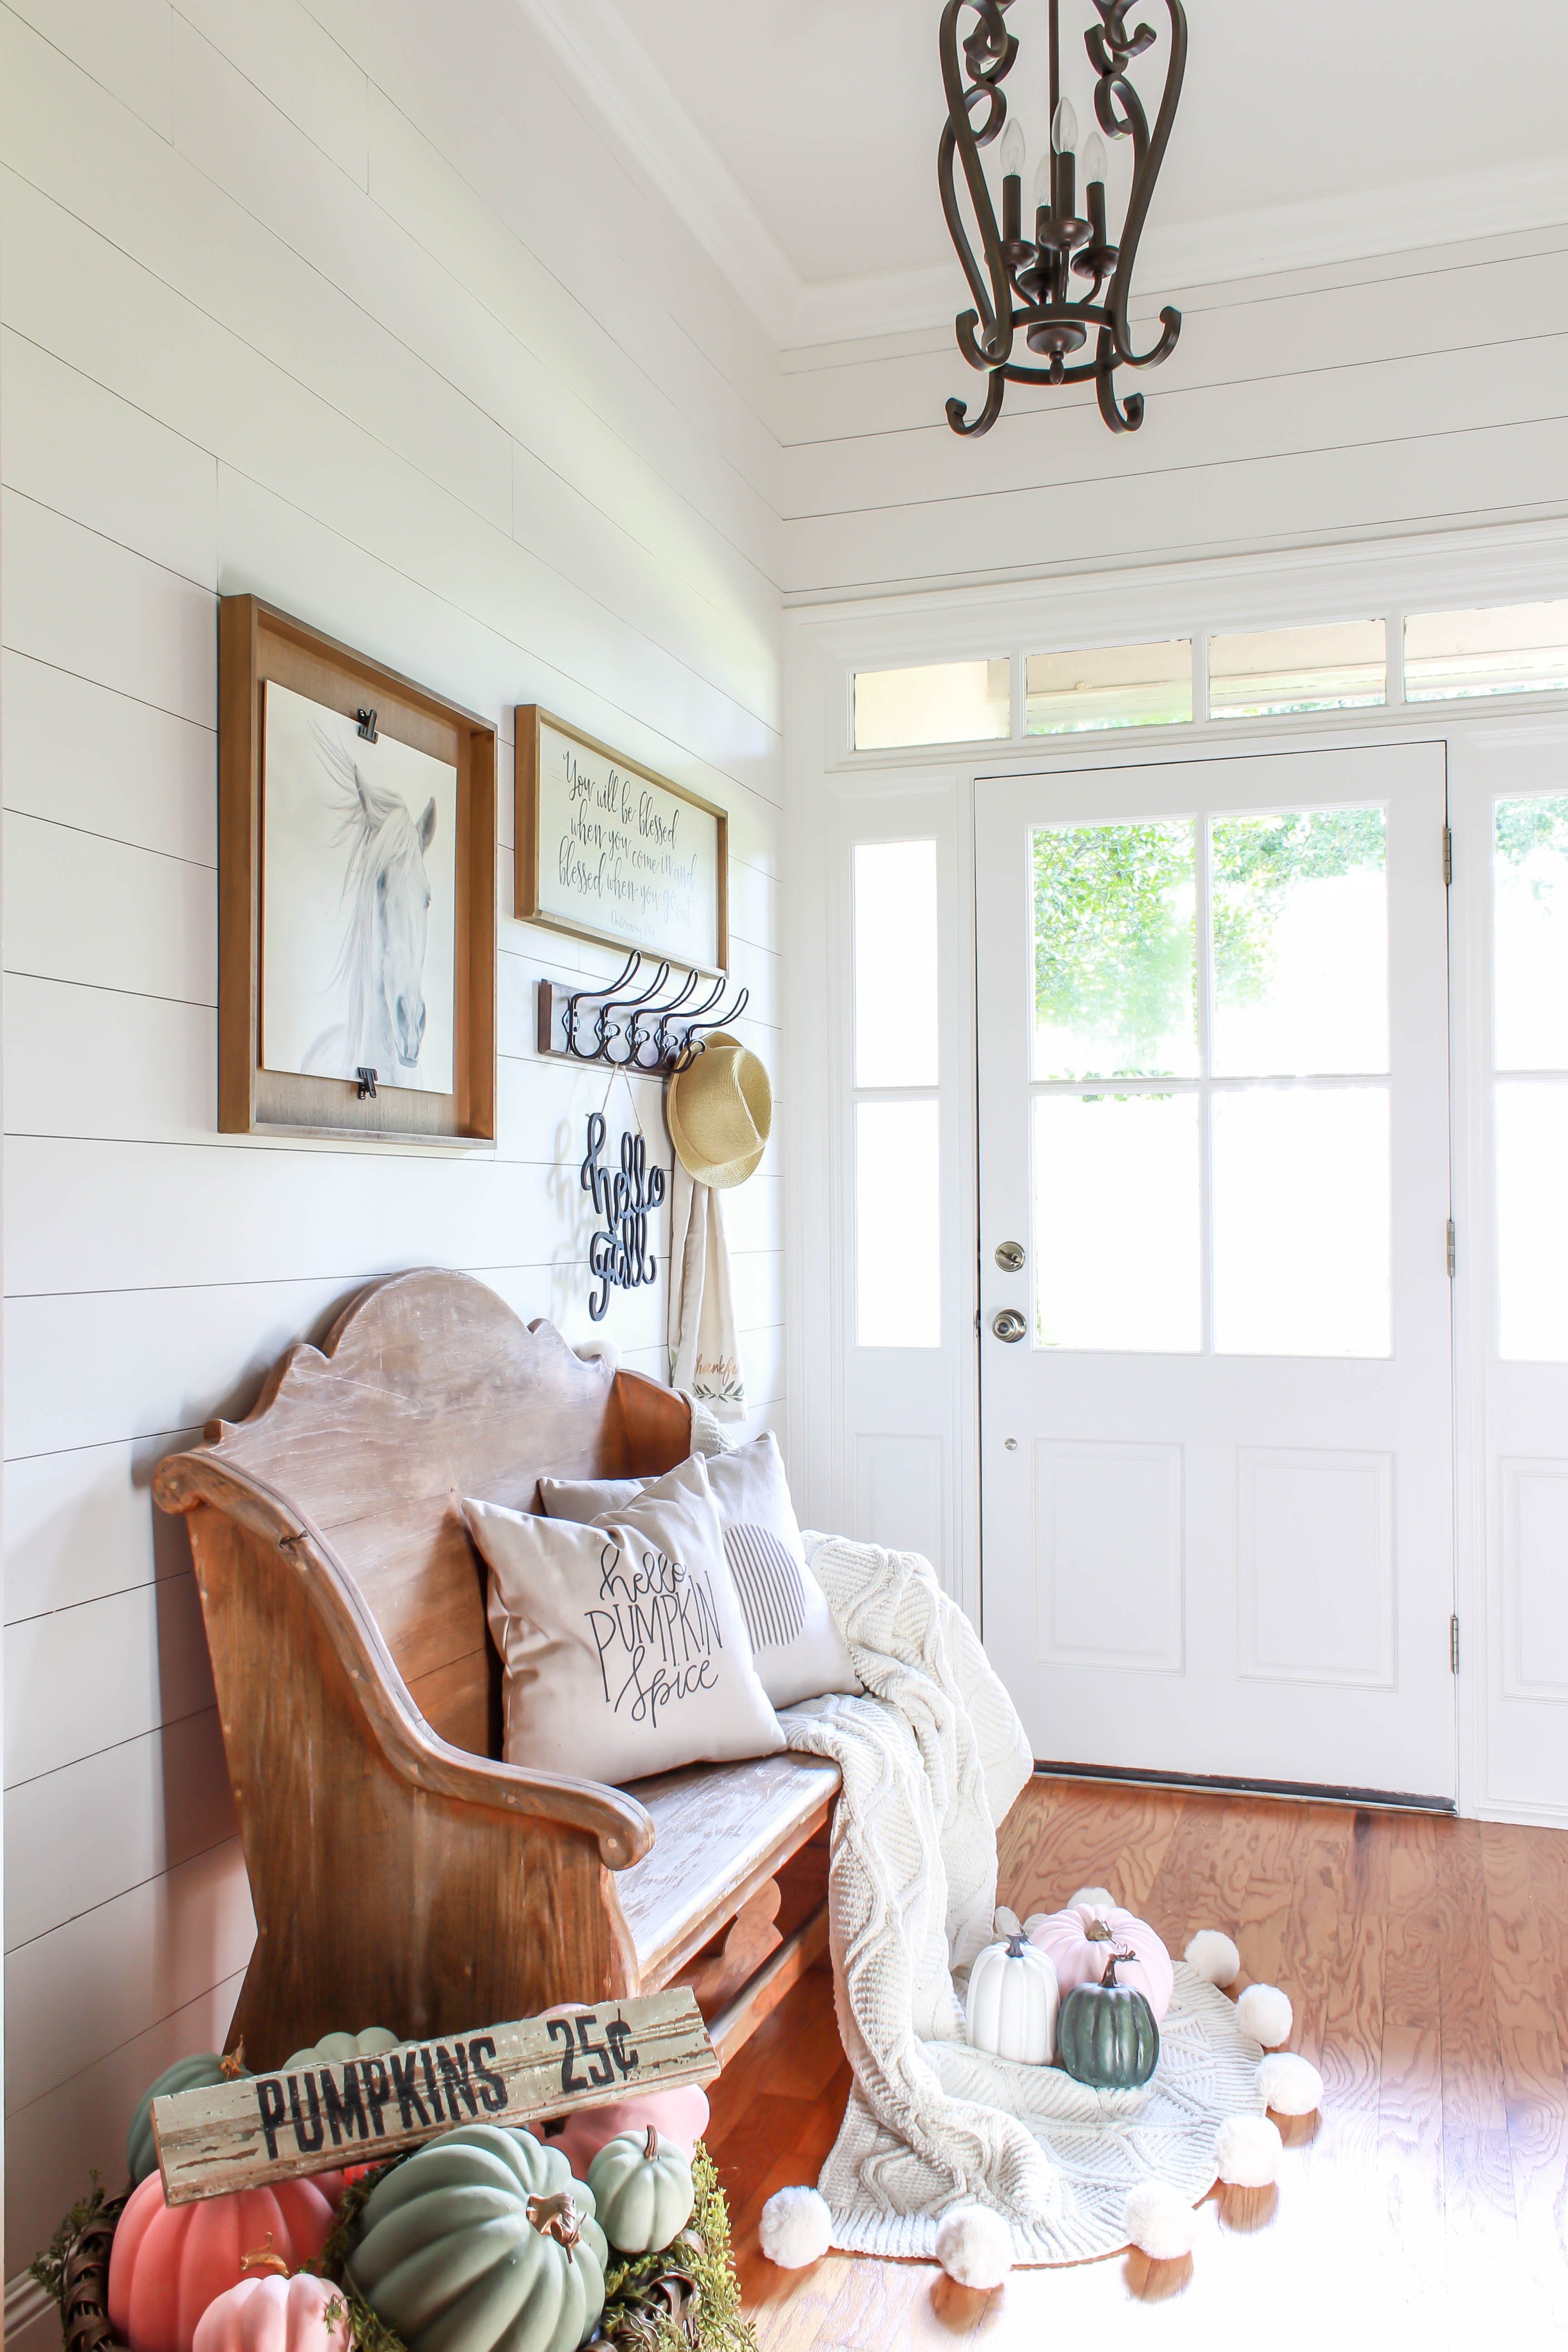 Come on in and take a fall decor tour of my farmhouse inspired home. I'll share how I incorporate lots of vintage goods with my decor to create a cozy feel.